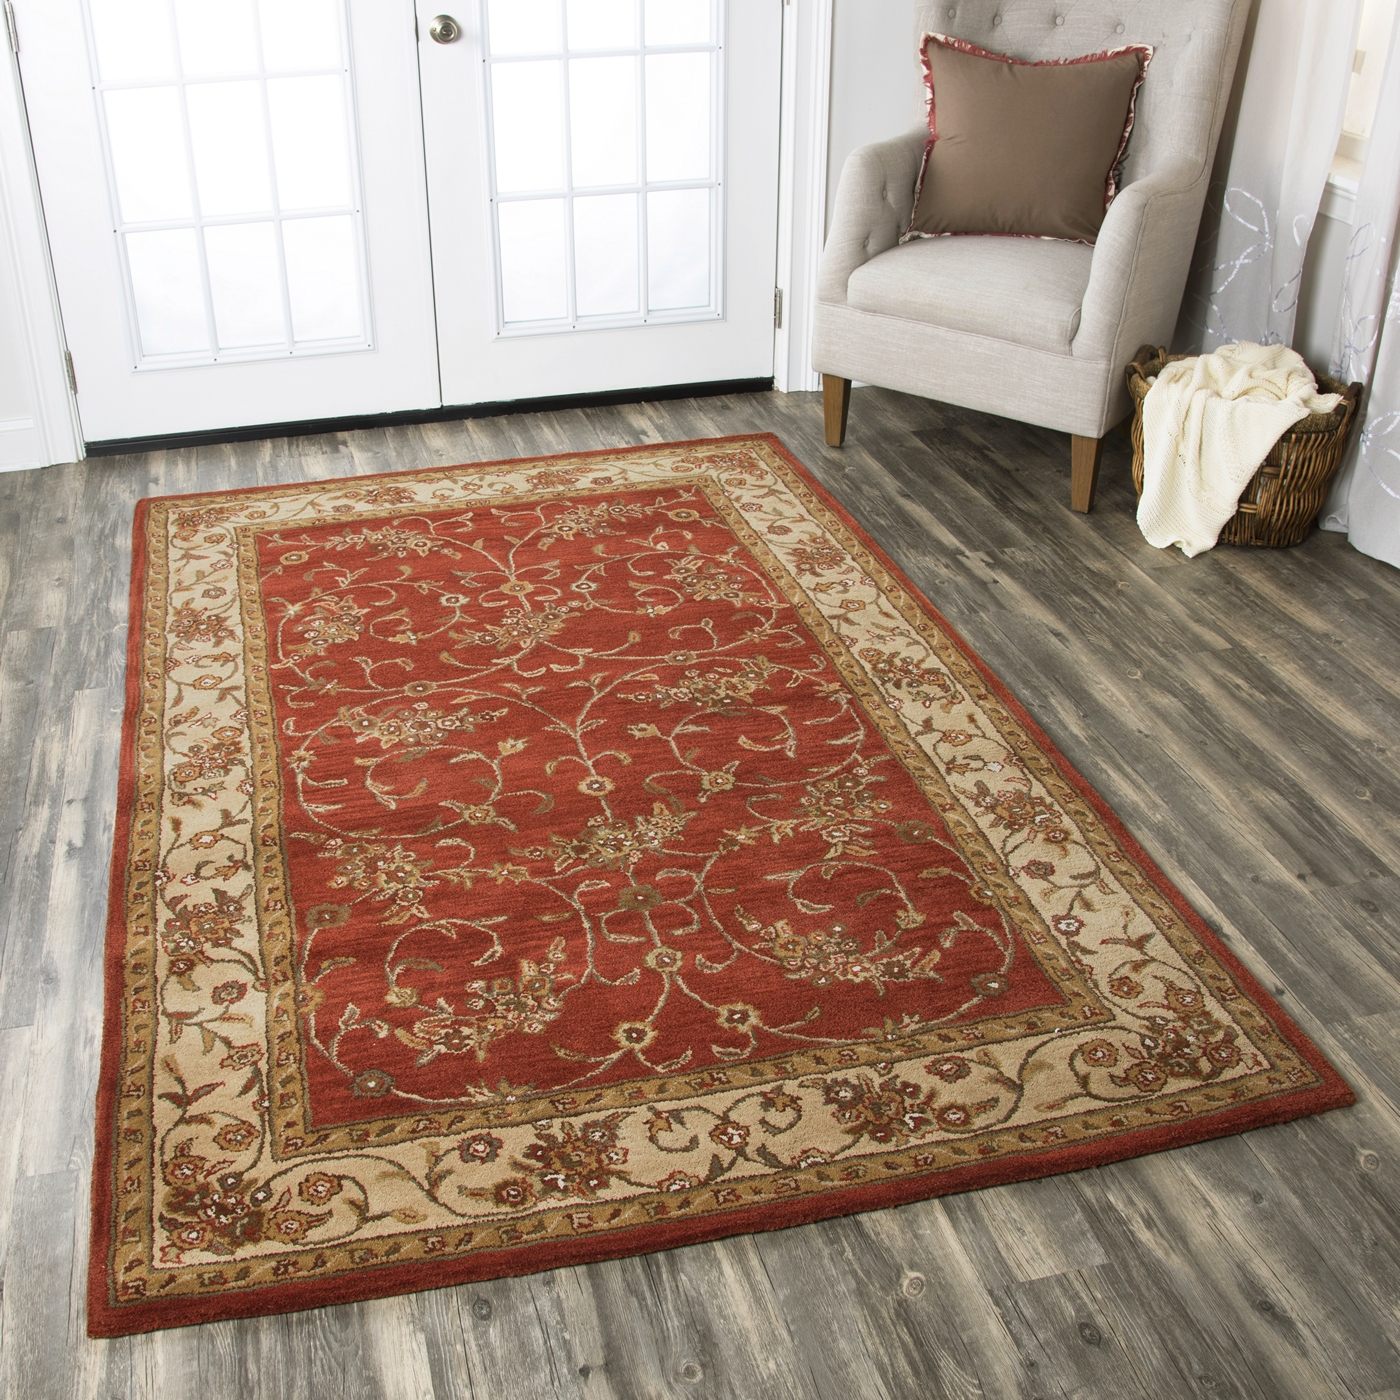 craft traditional hand tufted wool area rug in red ivory beige 12 39 x 15 39. Black Bedroom Furniture Sets. Home Design Ideas